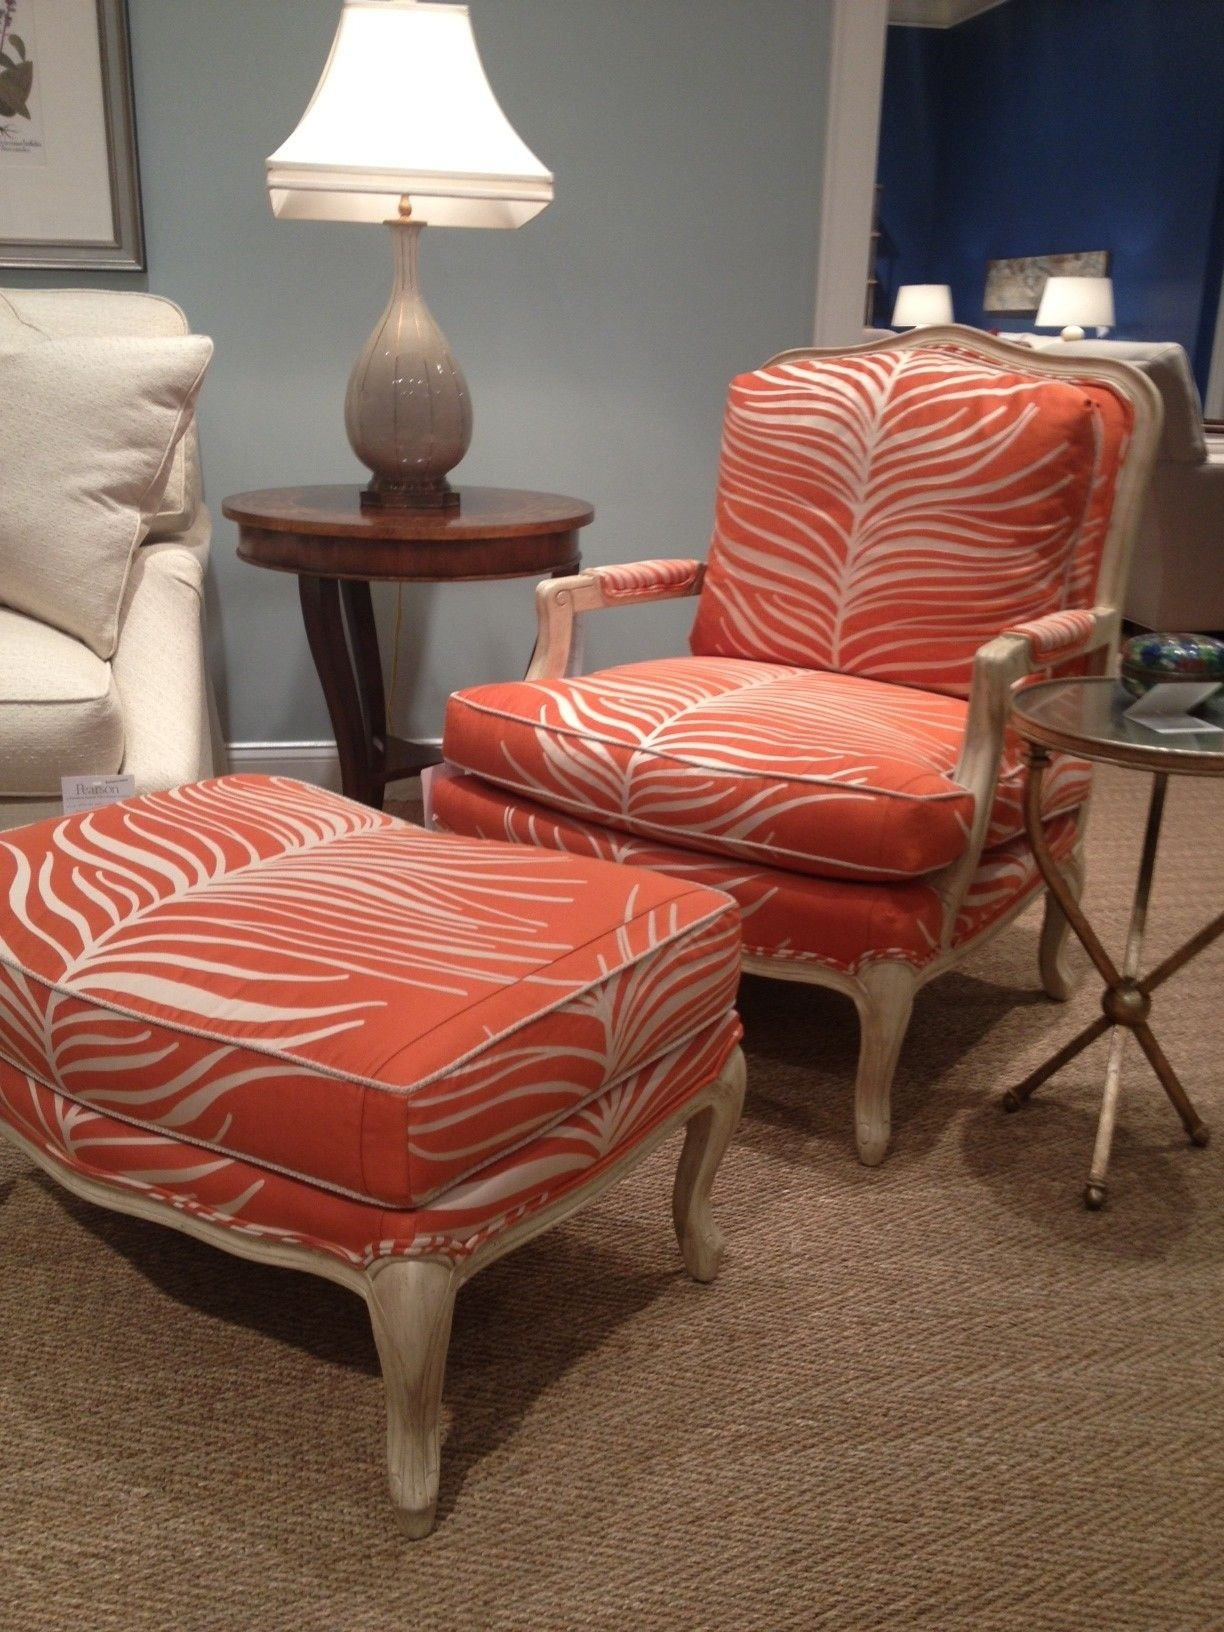 Latest Pearson Furniture Fab Orange Animal Print Chair! #hpmkt (#5 of 20)